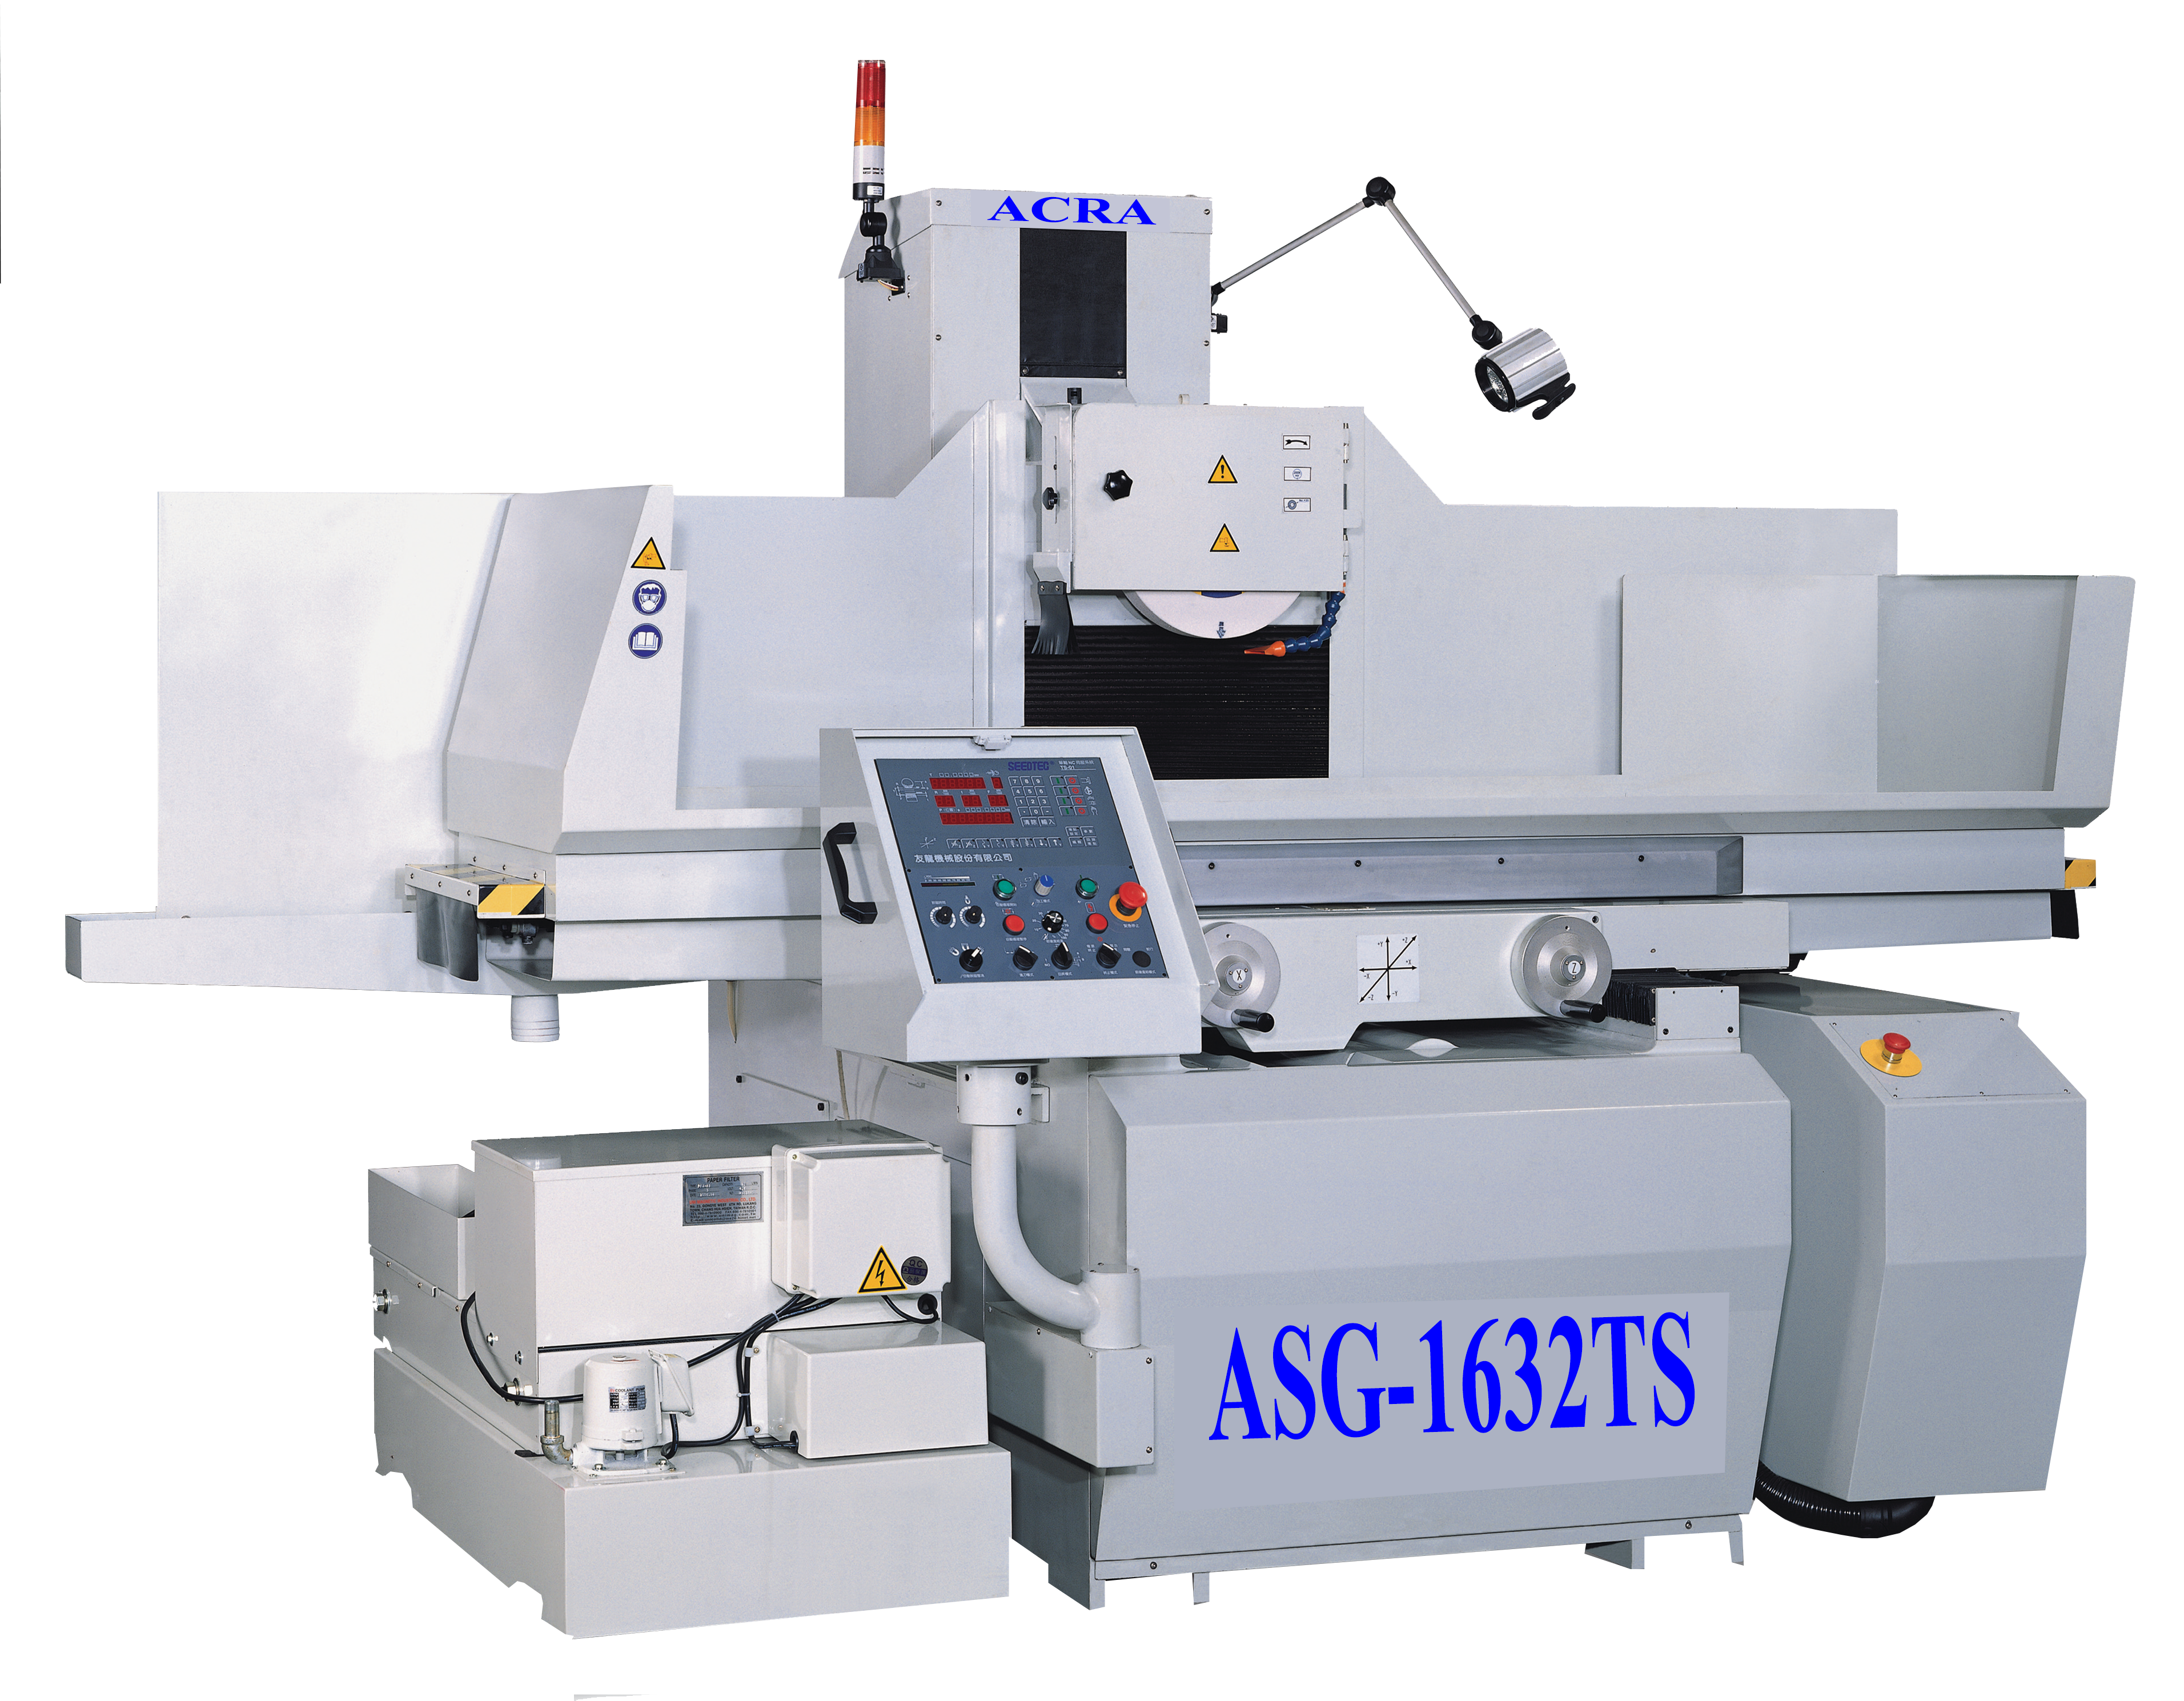 """16"""" X 32"""" ACRA MODEL ASG-1632TS NC CONTROLLED FULLY AUTOMATIC 3 AXIS PRECISION SURFACE GRINDER"""